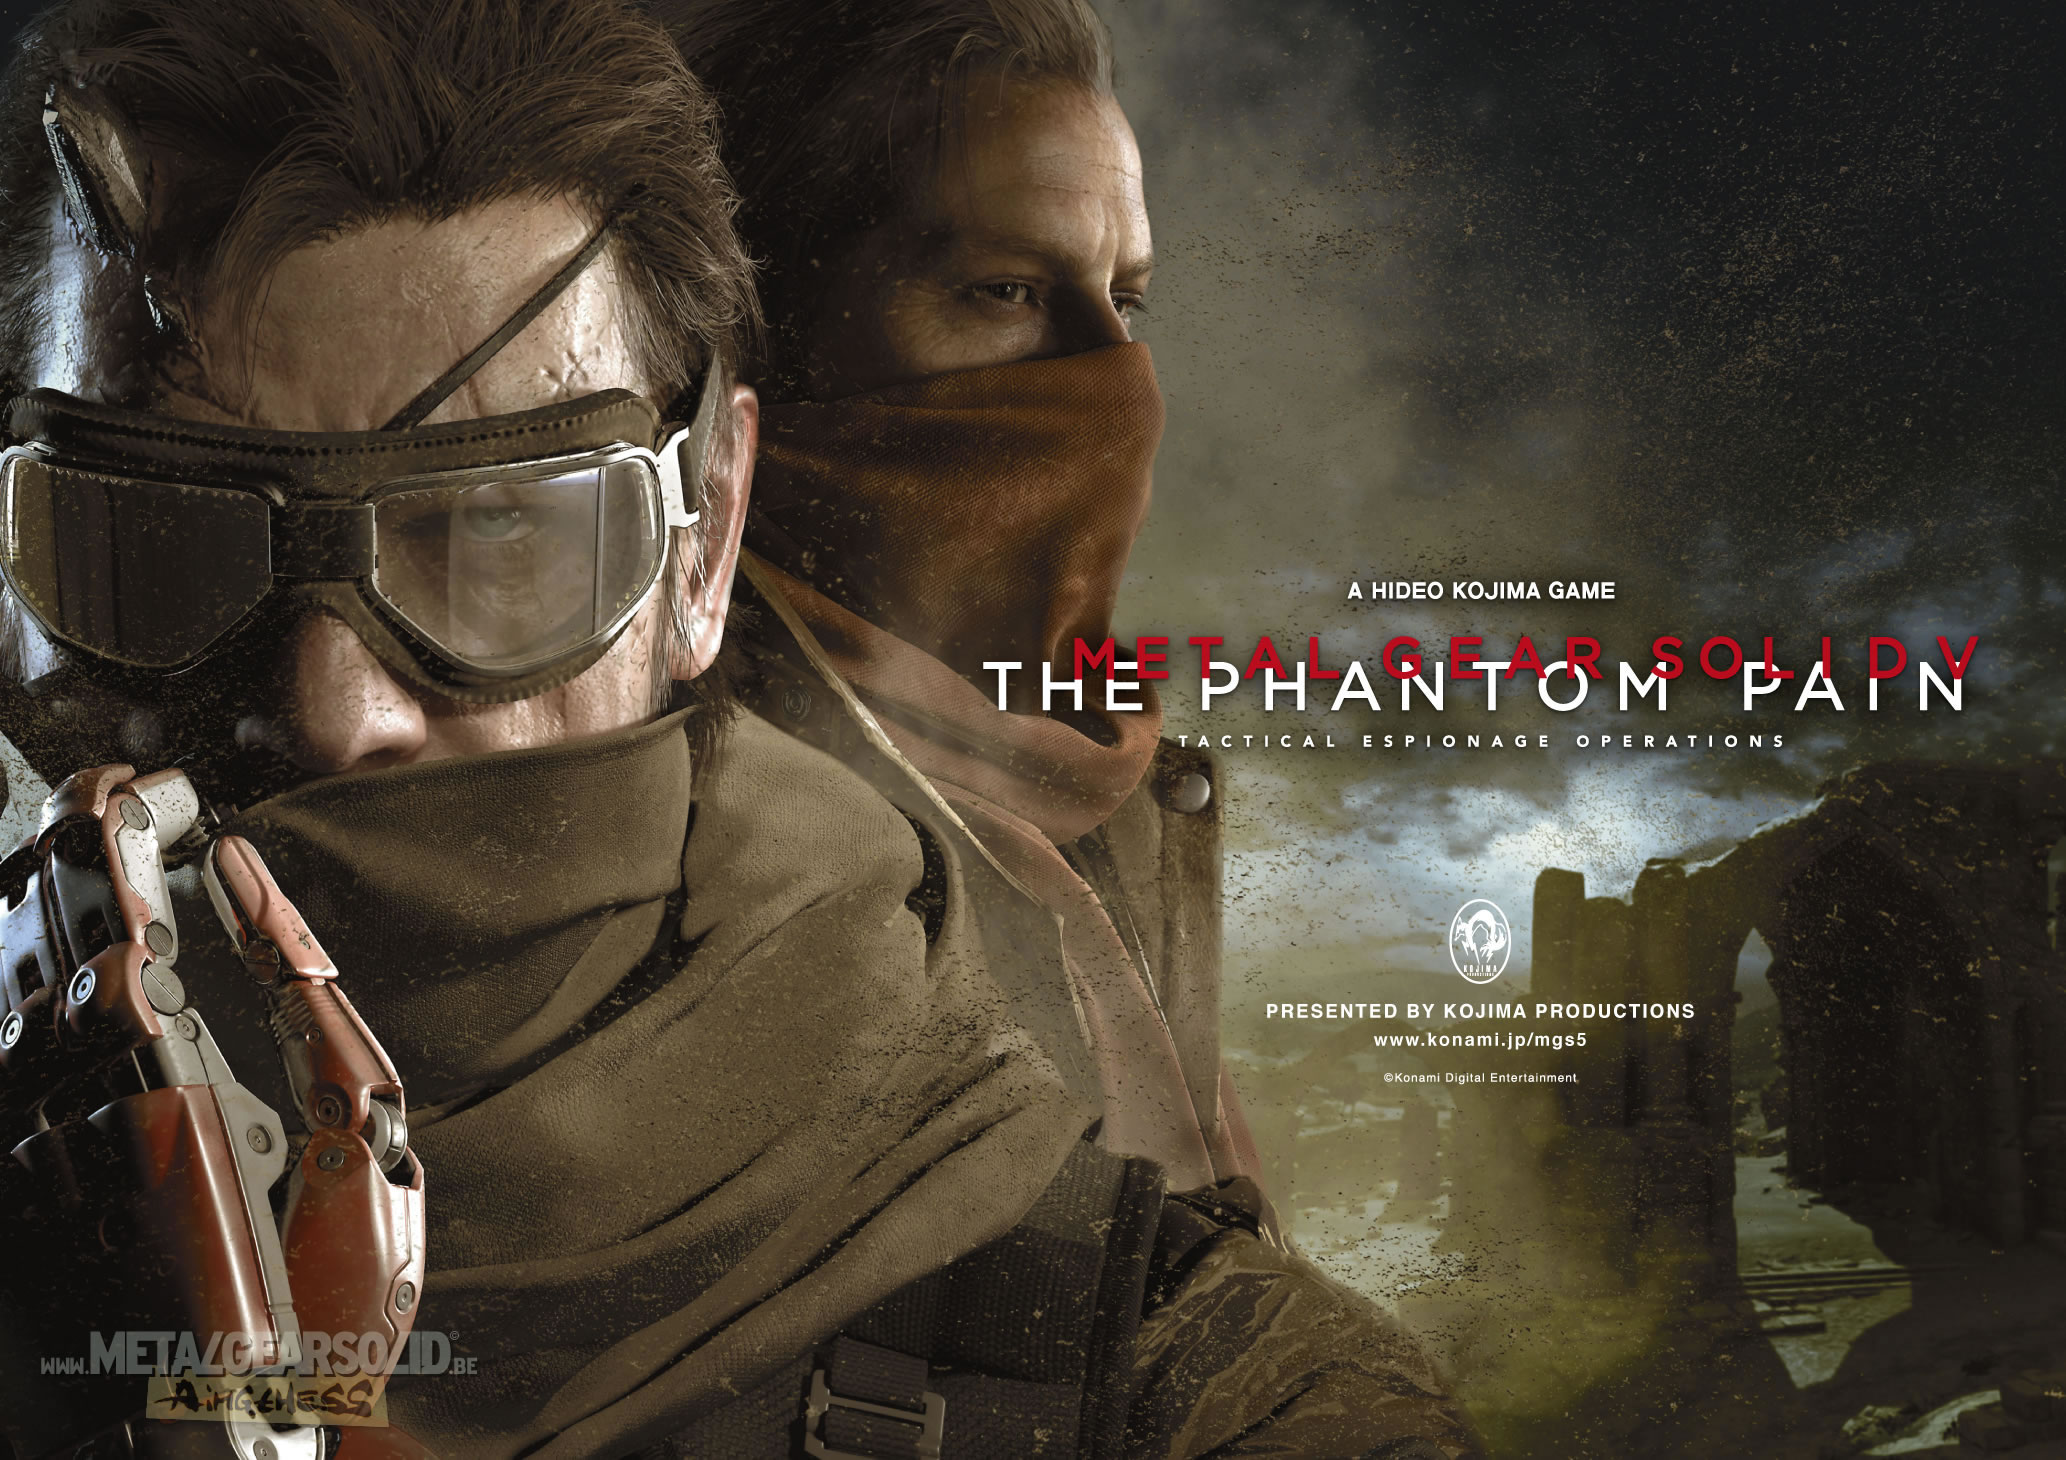 Metal Gear Solid V: The Phantom Pain Will Launch On PC At Same Time As Consoles